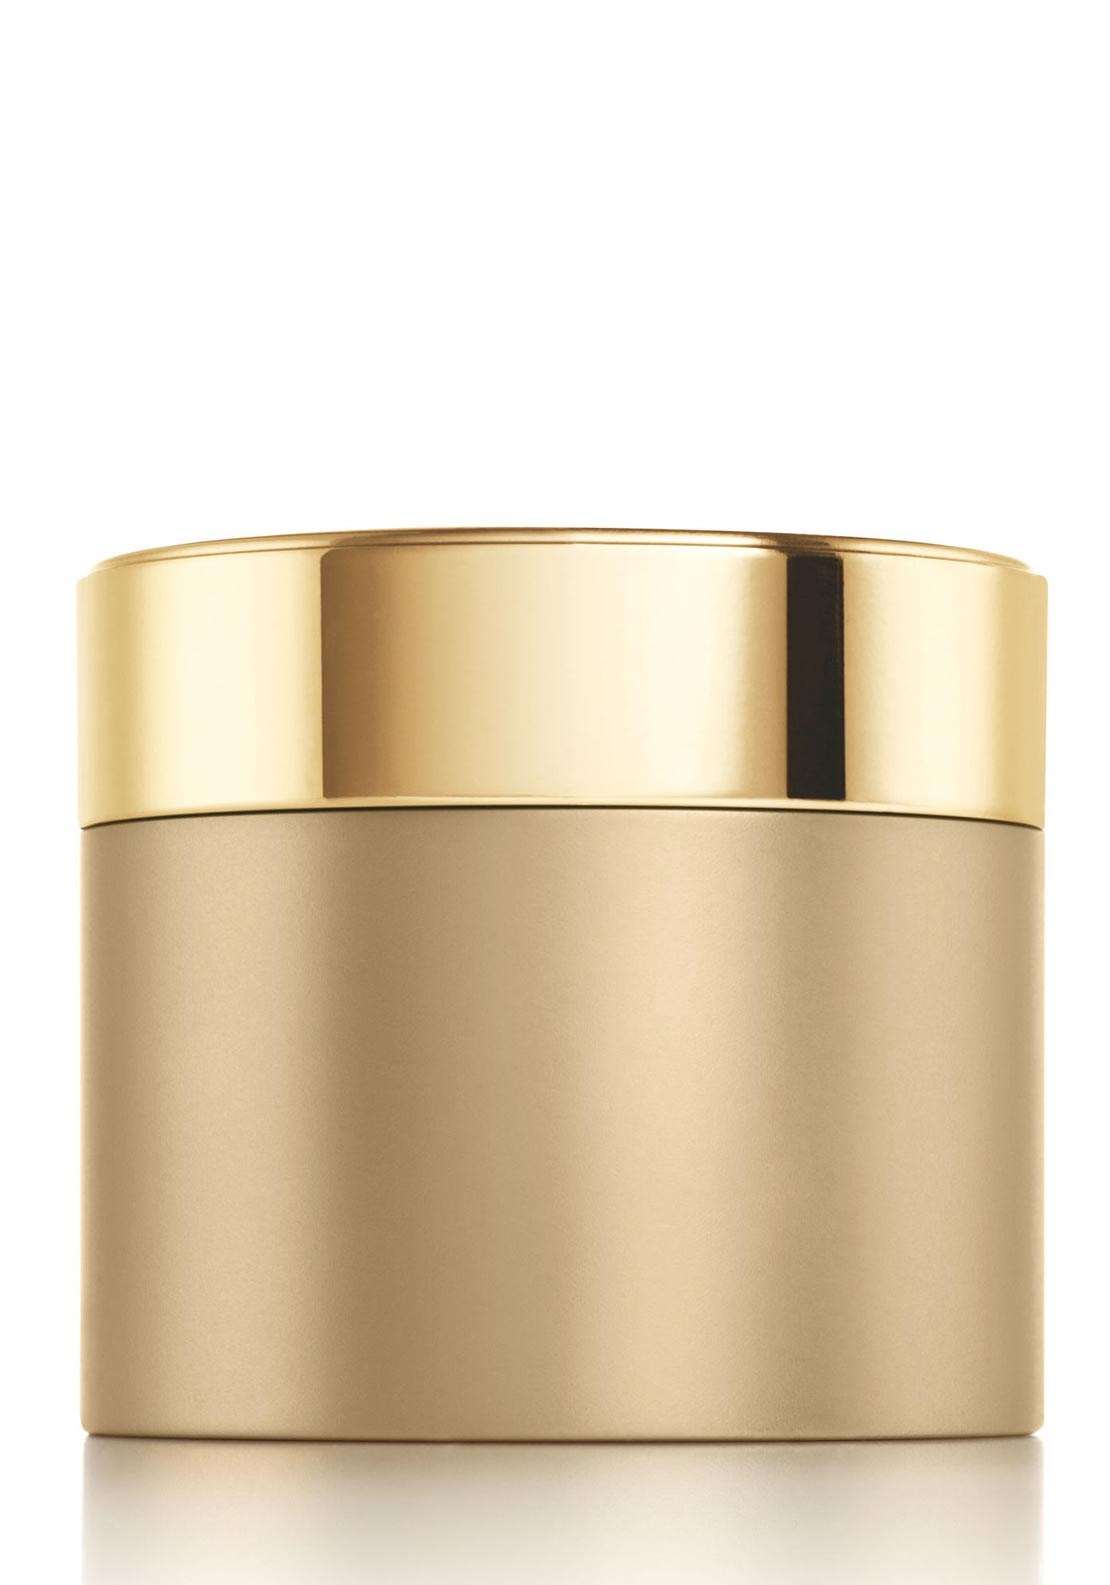 Elizabeth Arden Lift and Firm Eye Cream, 15ml